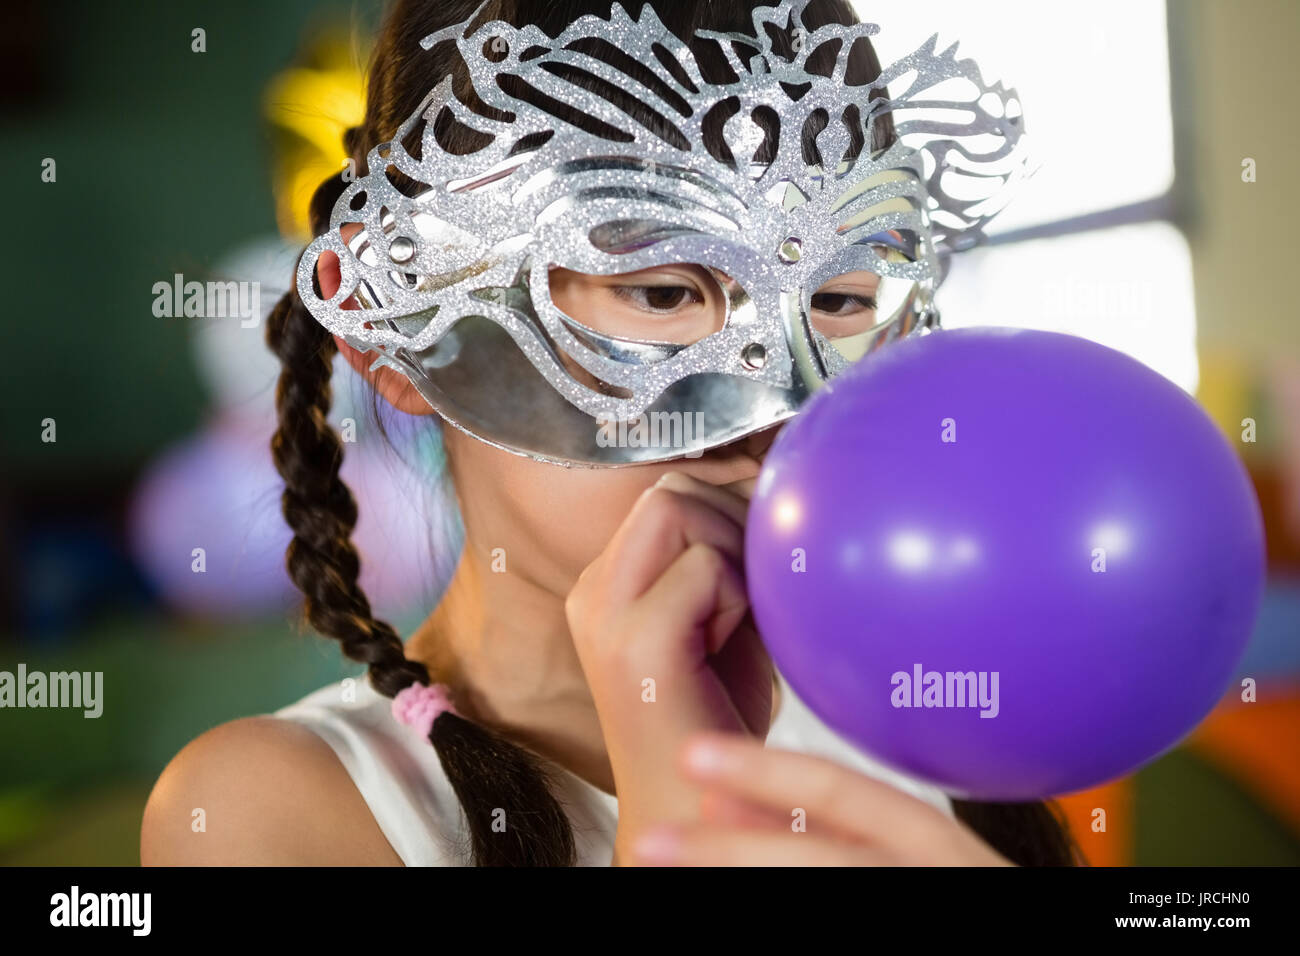 Adorable girl blowing balloon during birthday party at home - Stock Image